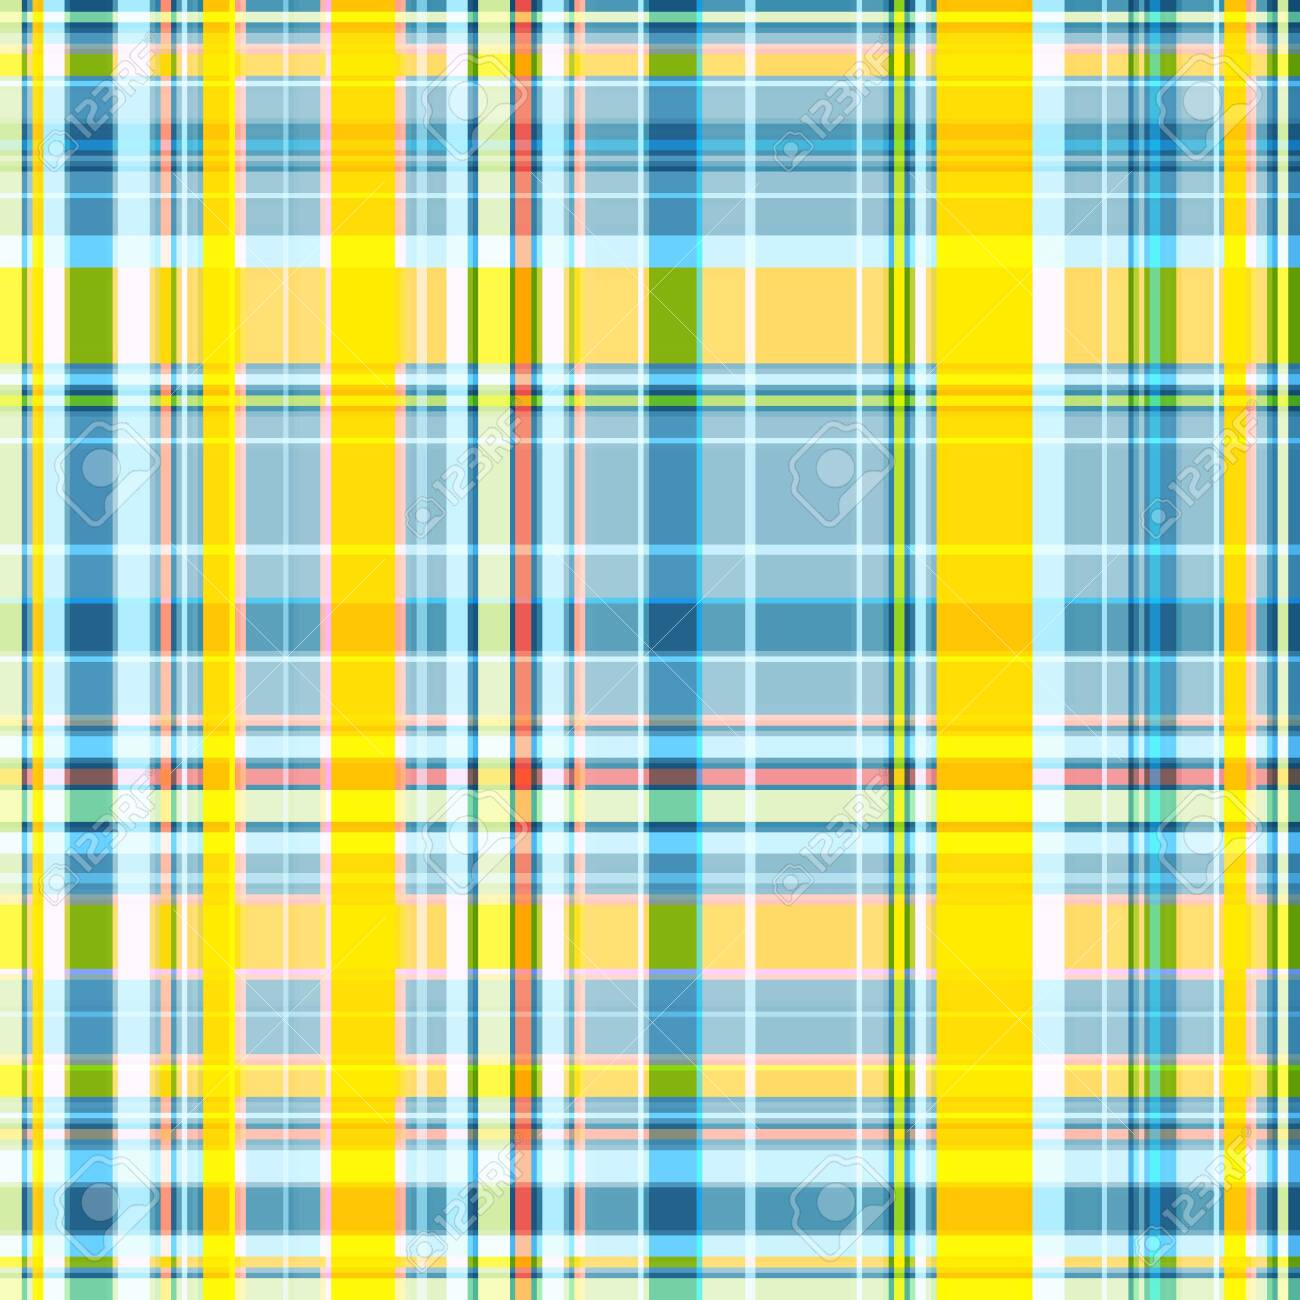 Seamless checkered pattern, the intersection of wide and thin stripes in yellow-blue colors. Great for decorating fabrics, textiles, gift wrapping, printed matter, interiors, advertising. - 151614111